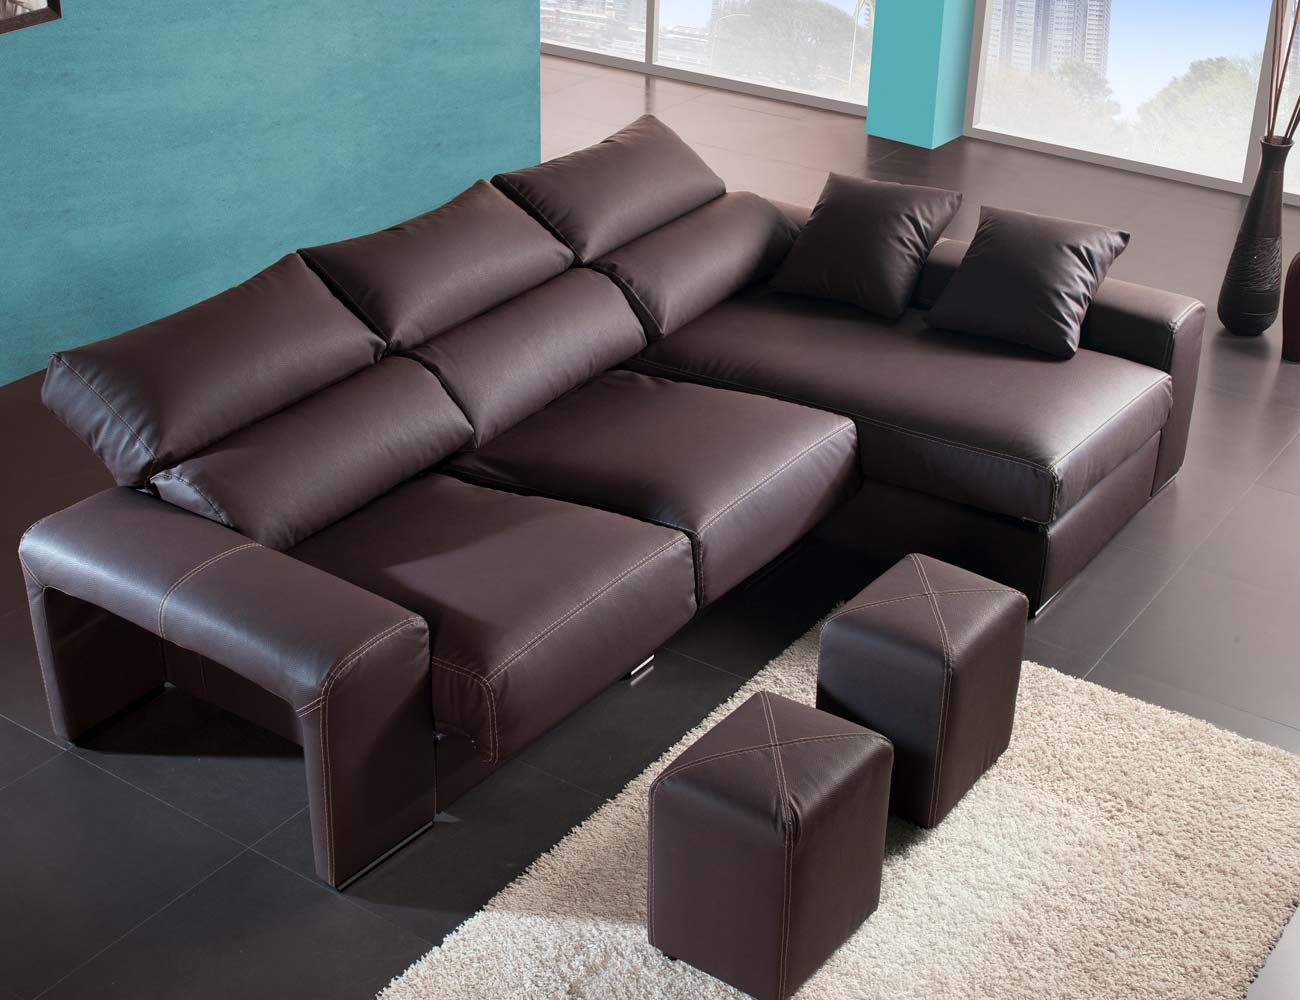 Sofa chaiselongue moderno polipiel chocolate poufs taburetes51